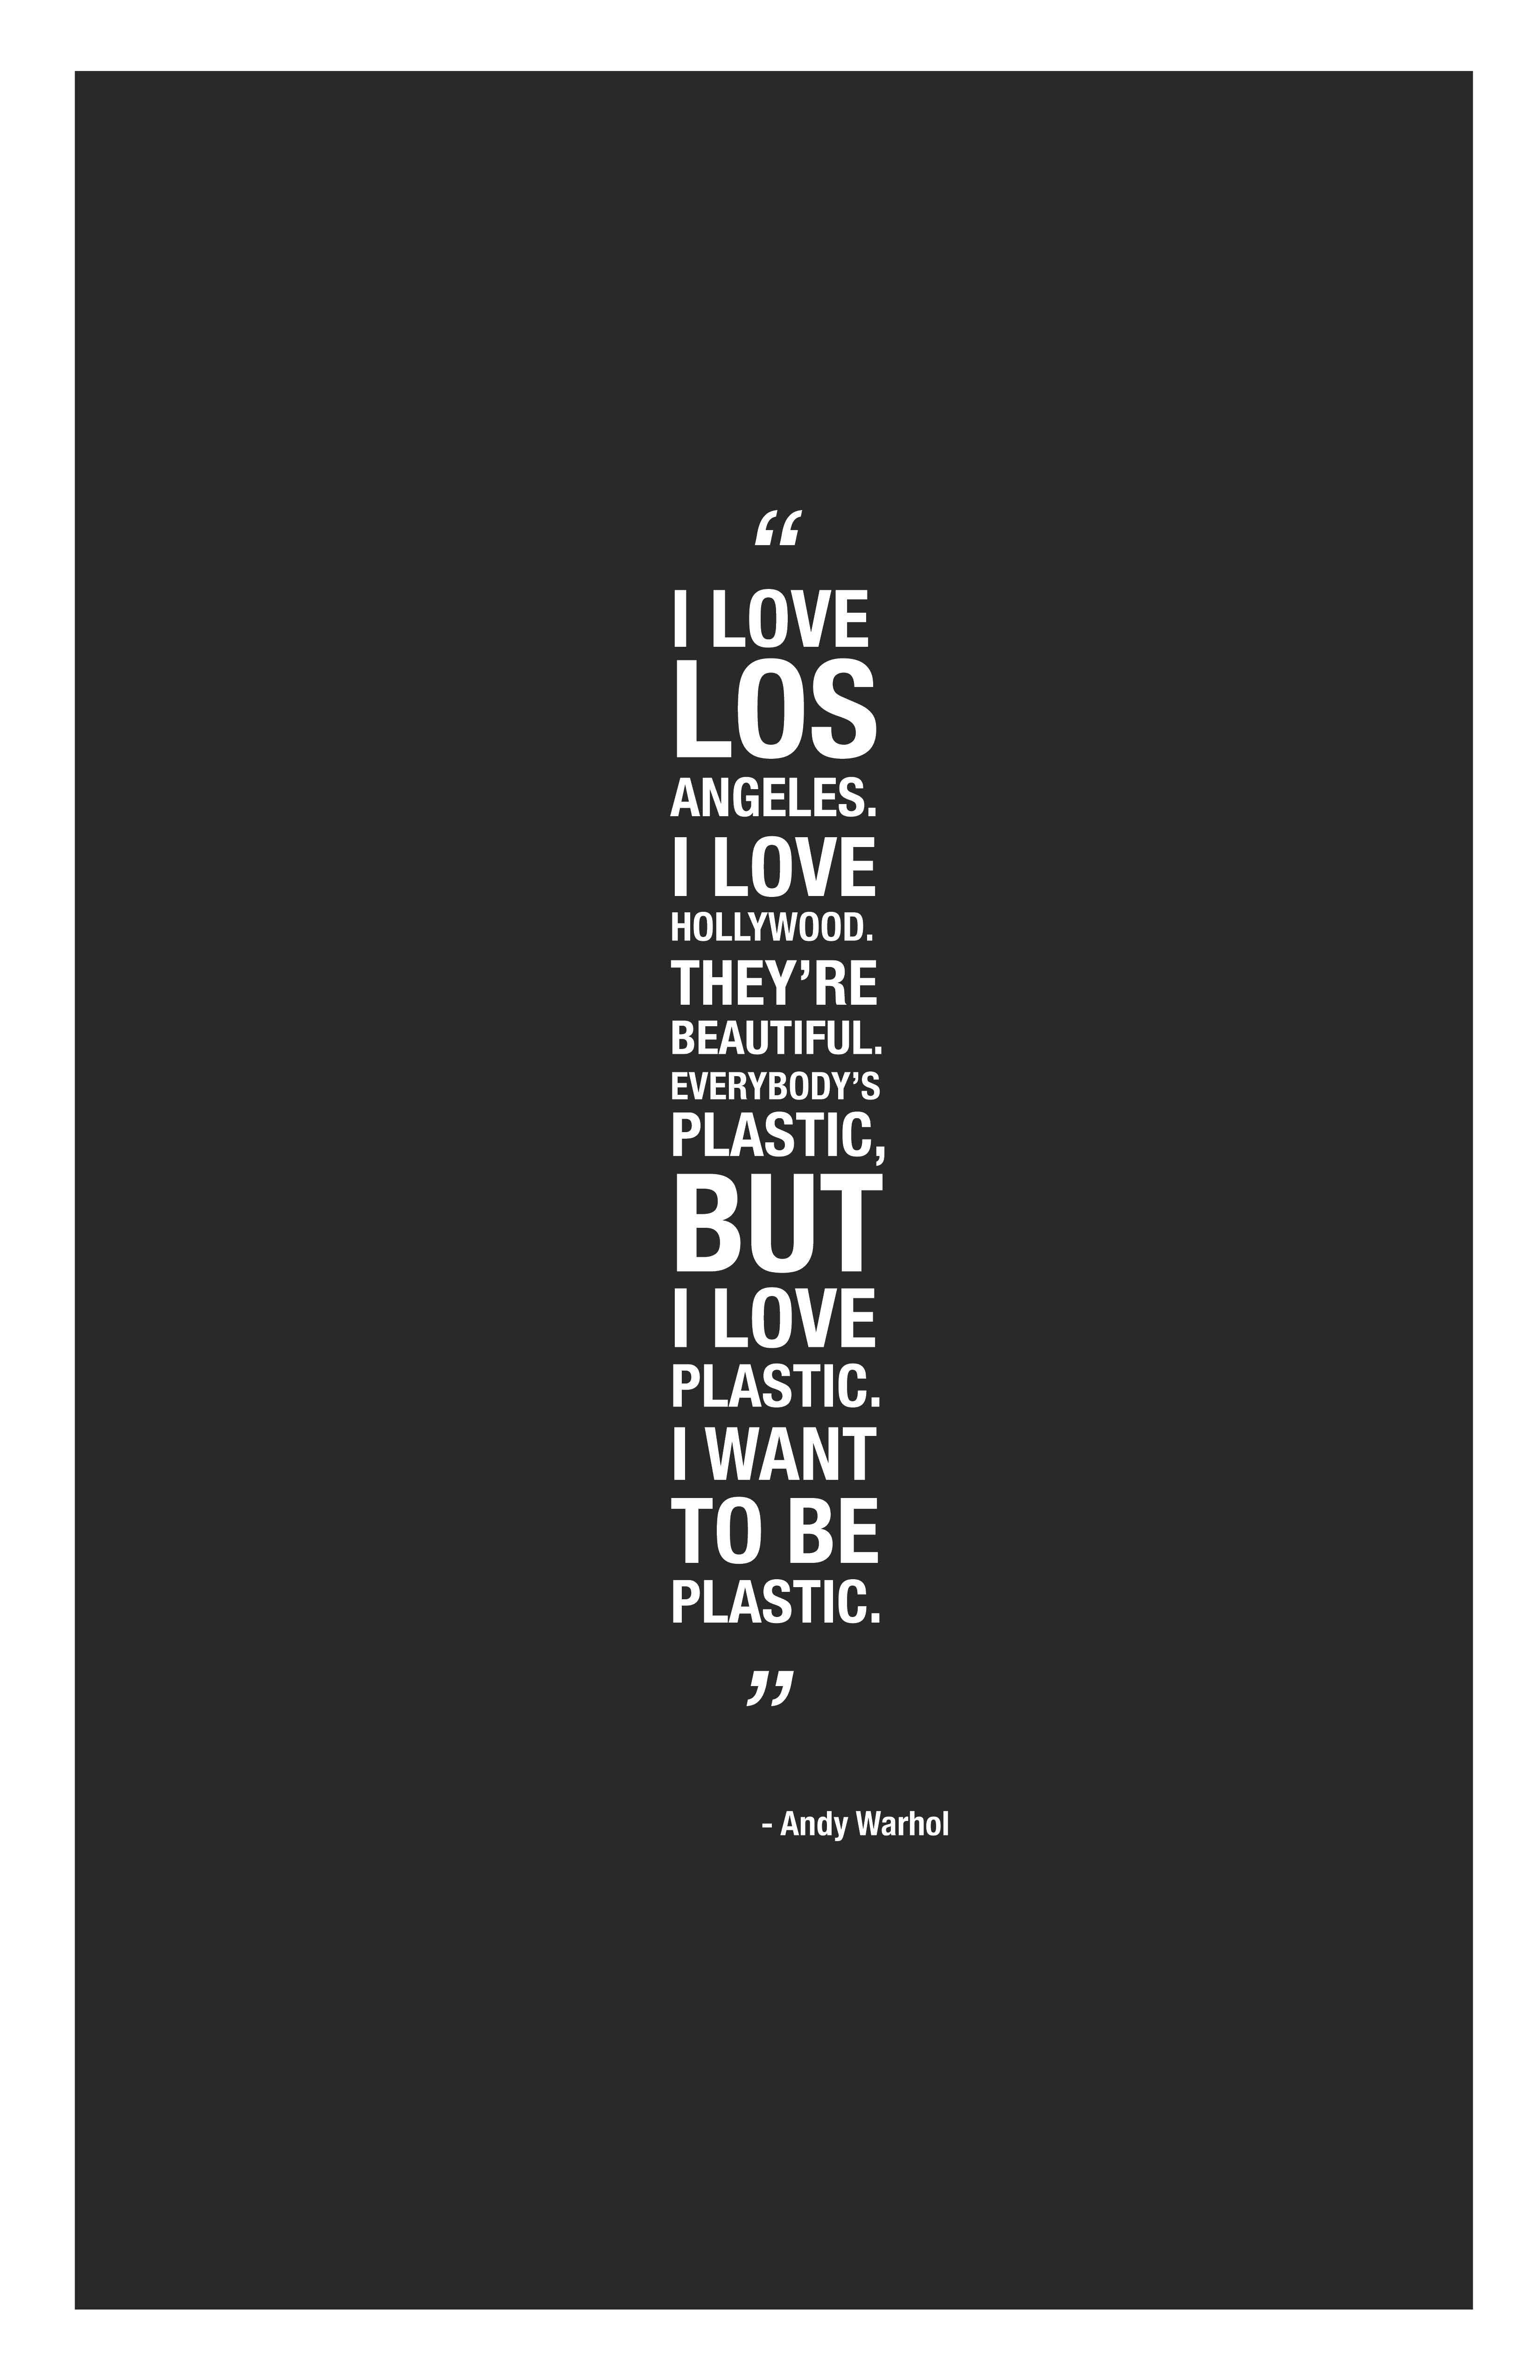 andy warhol quotes - HD 3300×5100